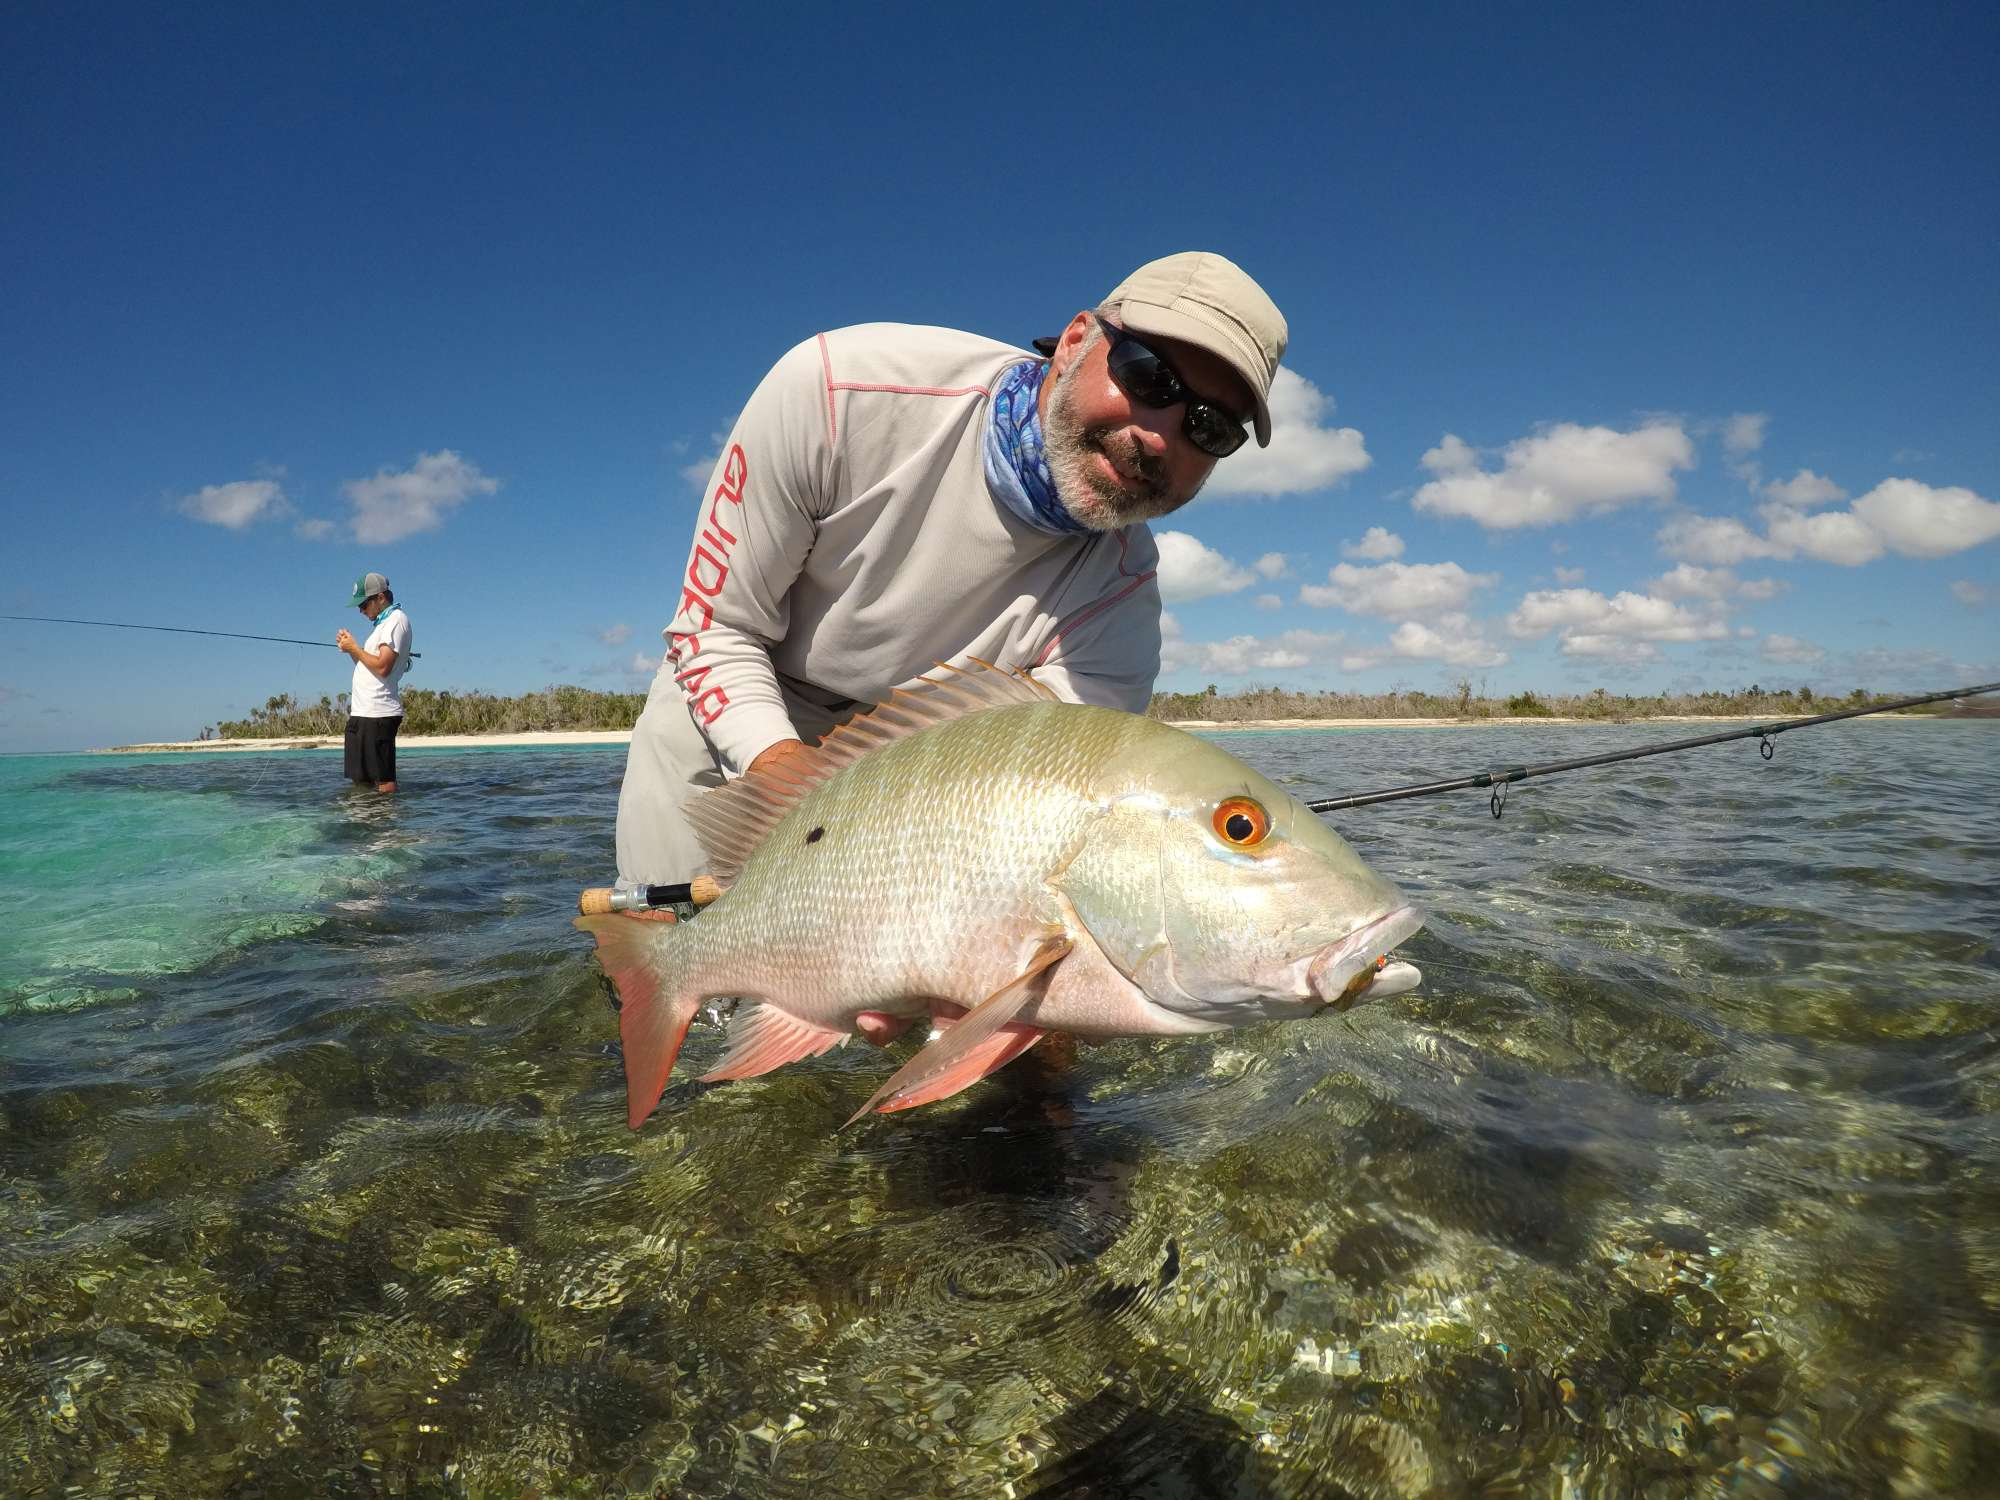 Bahamas new images from crooked and acklins islands for Fly fishing bahamas